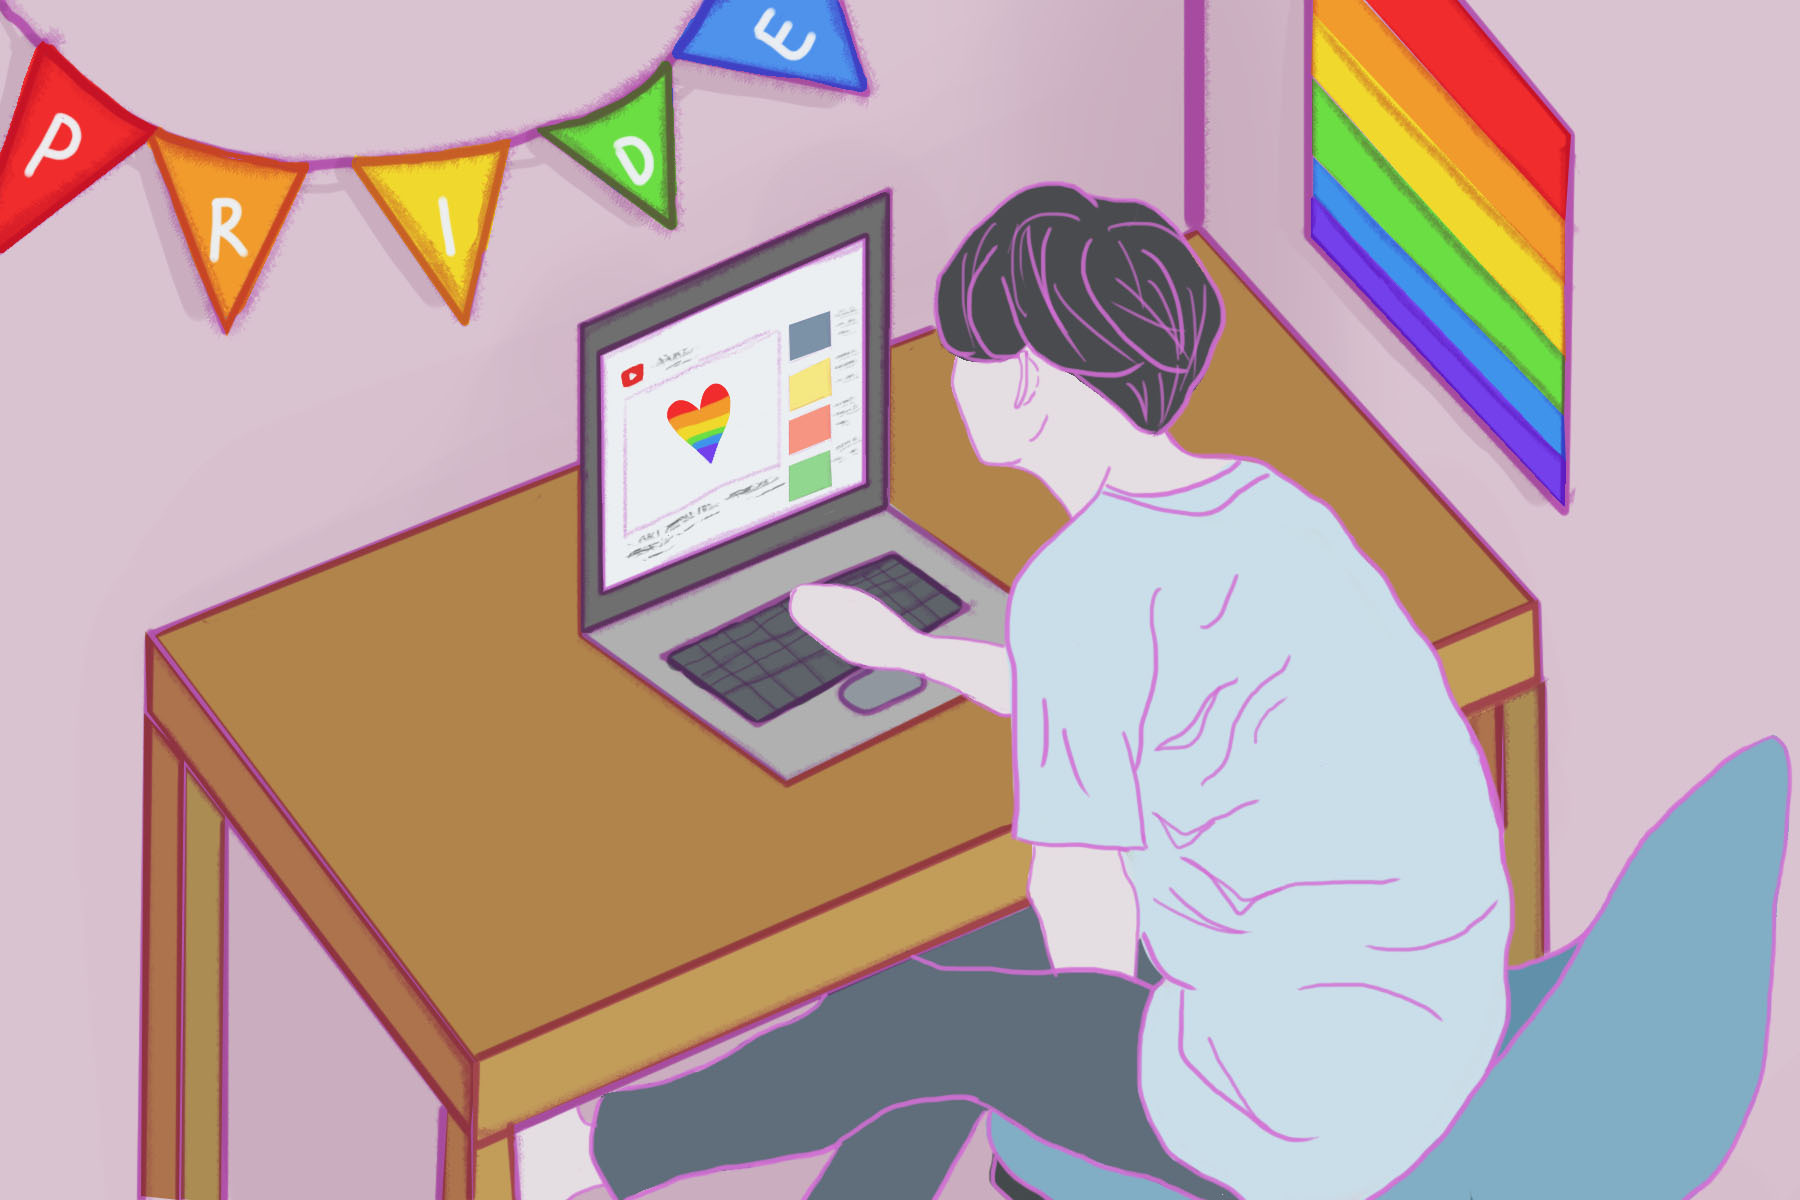 In an article about Pride Month, someone in front of the computer in a room with a rainbow flag